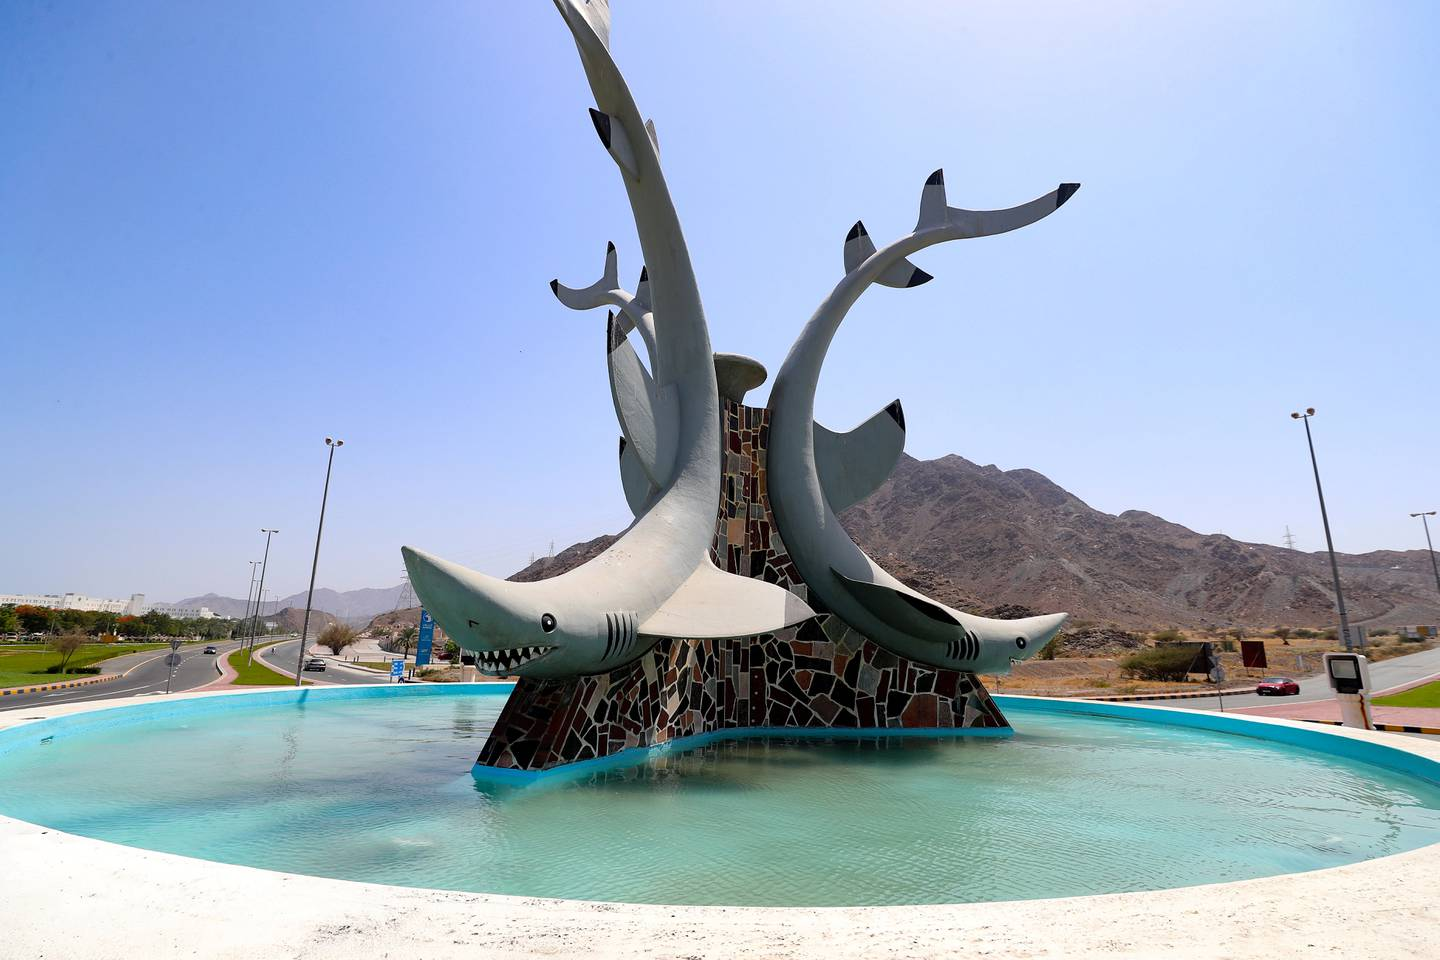 Dubai, United Arab Emirates - July 02, 2019: Roundabouts of the UAE. A roundabout in Dibba with sharks on it. Tuesday the 2nd of July 2019. Dibba. Chris Whiteoak / The National